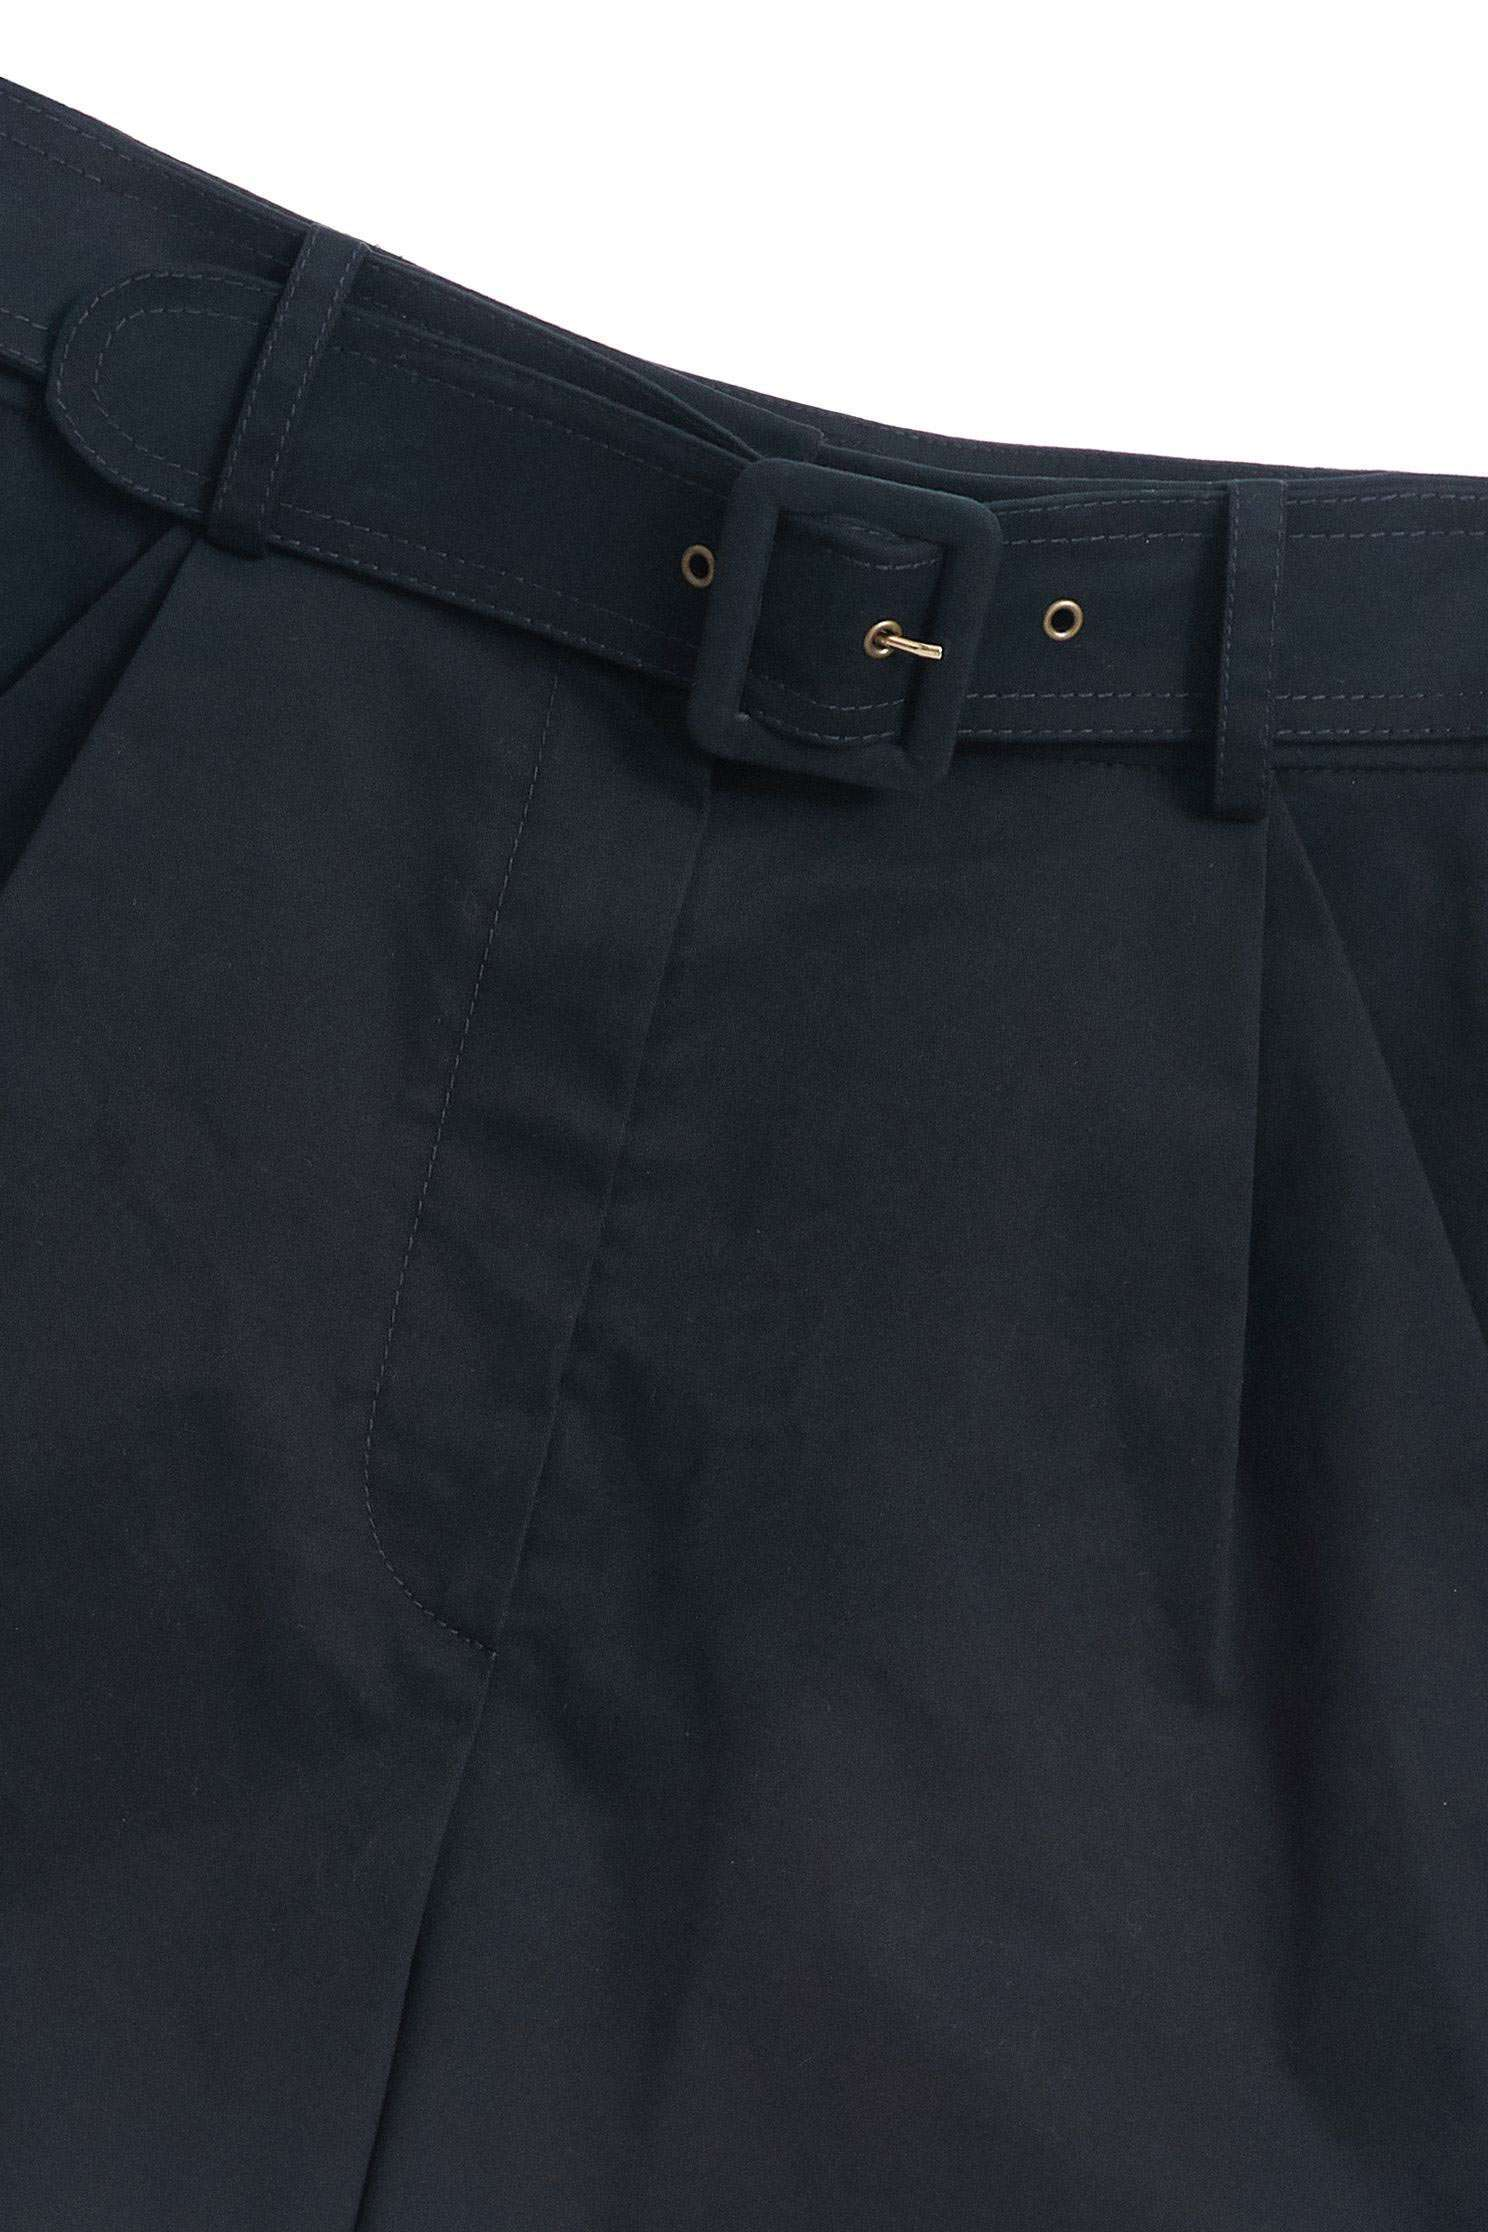 Vintage ink green pleated shorts,shorts,pants